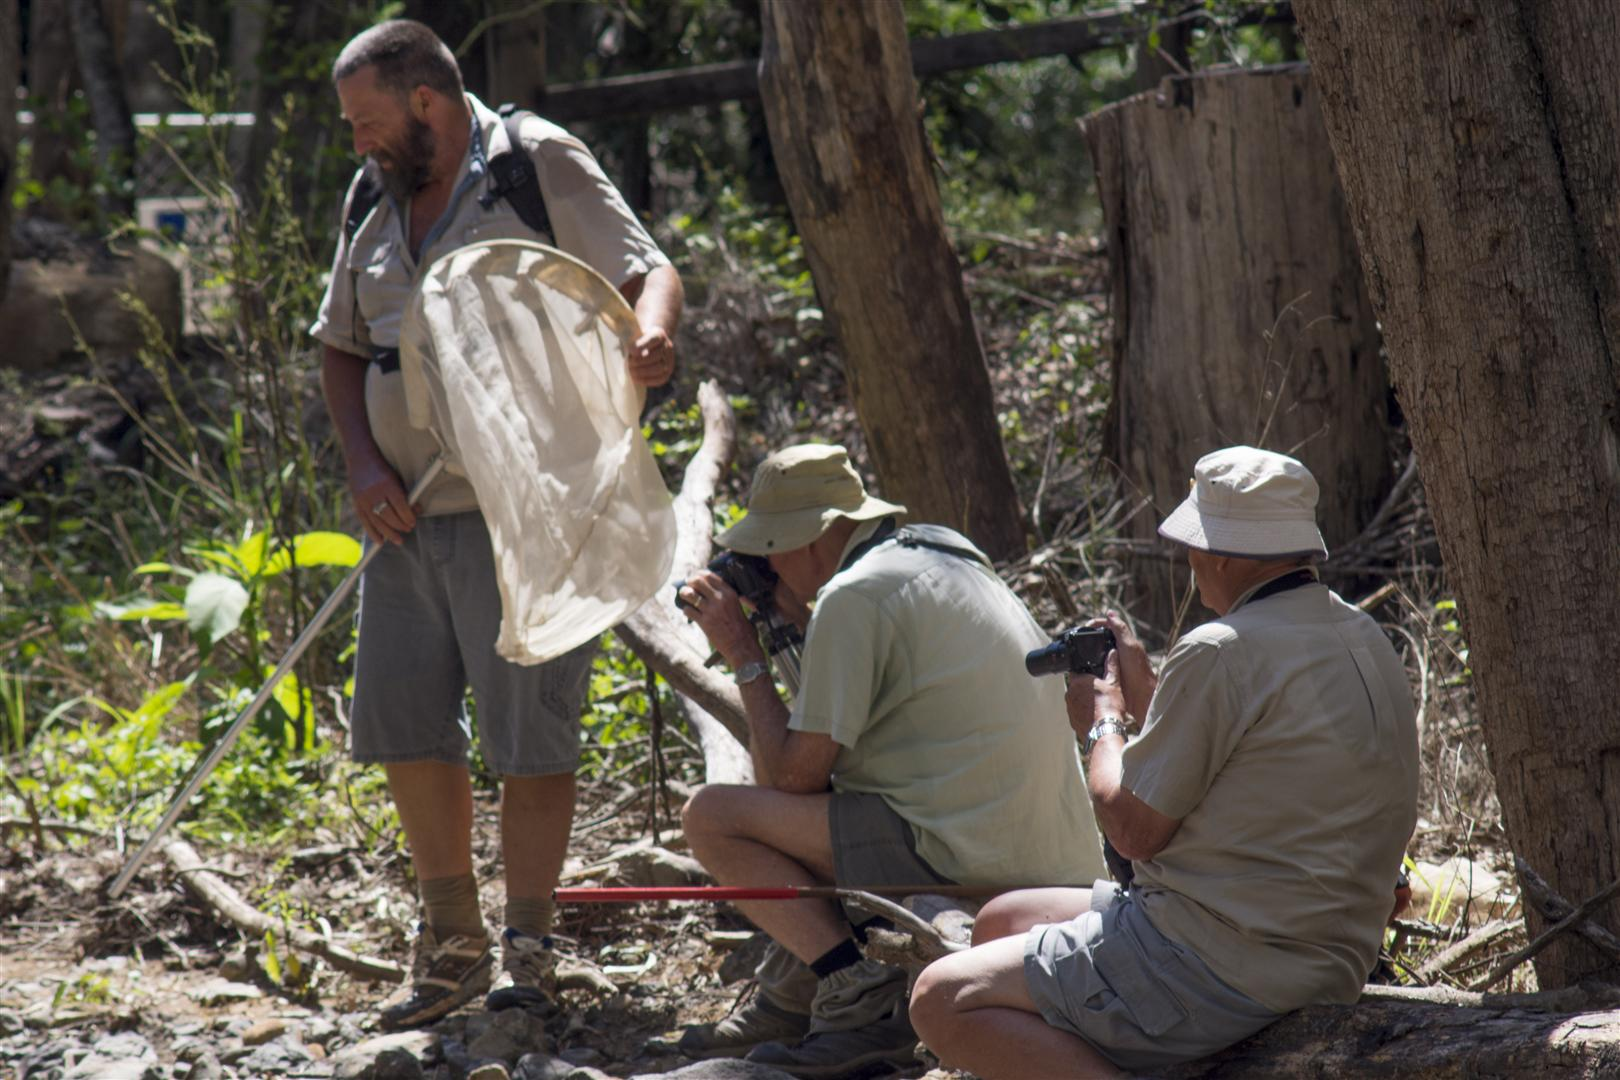 Dragonfly trip with Rod Hosbon, Al Young, Mark Weaver and Harry Ashdown. Redwood Park, Toowoomba.